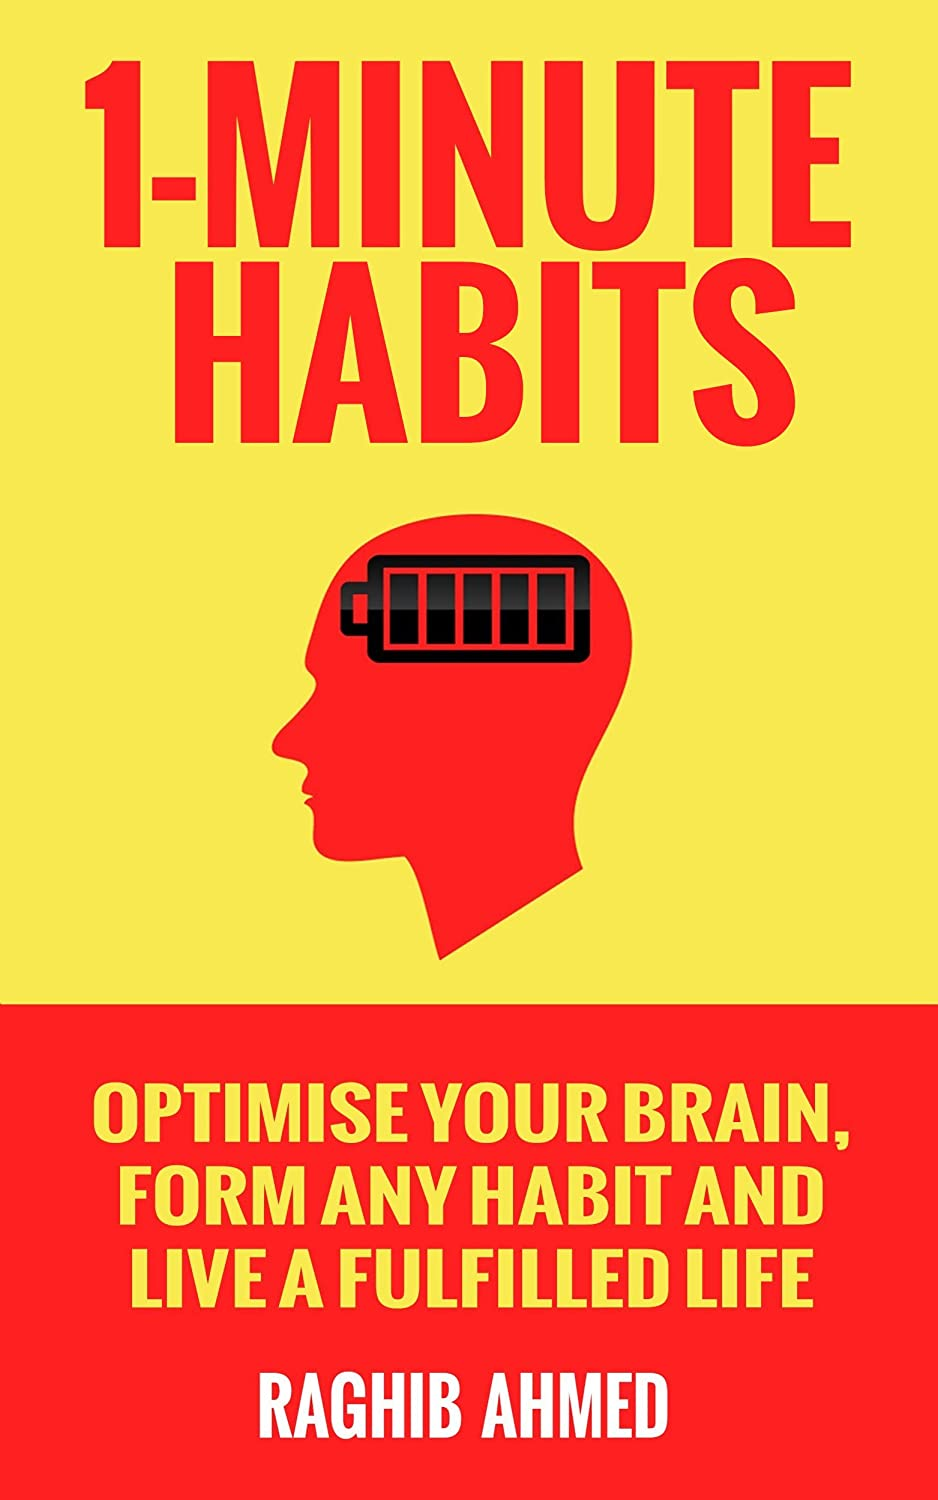 1-Minute Habits: Optimise Your Brain, Form Any Habit And Live A Fulfilled Life by Raghib Ahmed